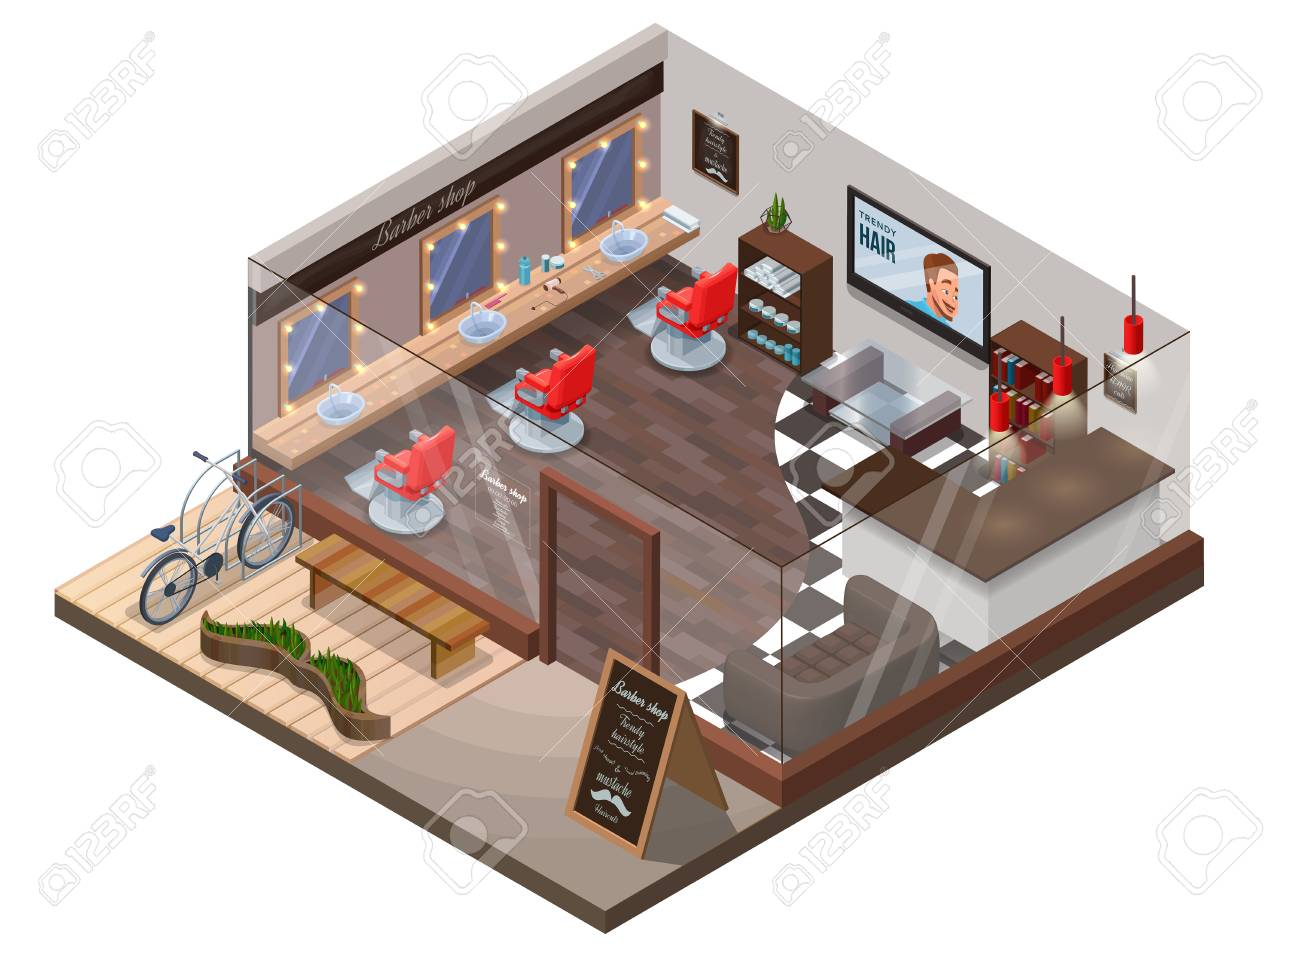 Isometric 3d Barber Shop Interior Hipster Hair Salon Design Royalty Free Cliparts Vectors And Stock Illustration Image 83835071